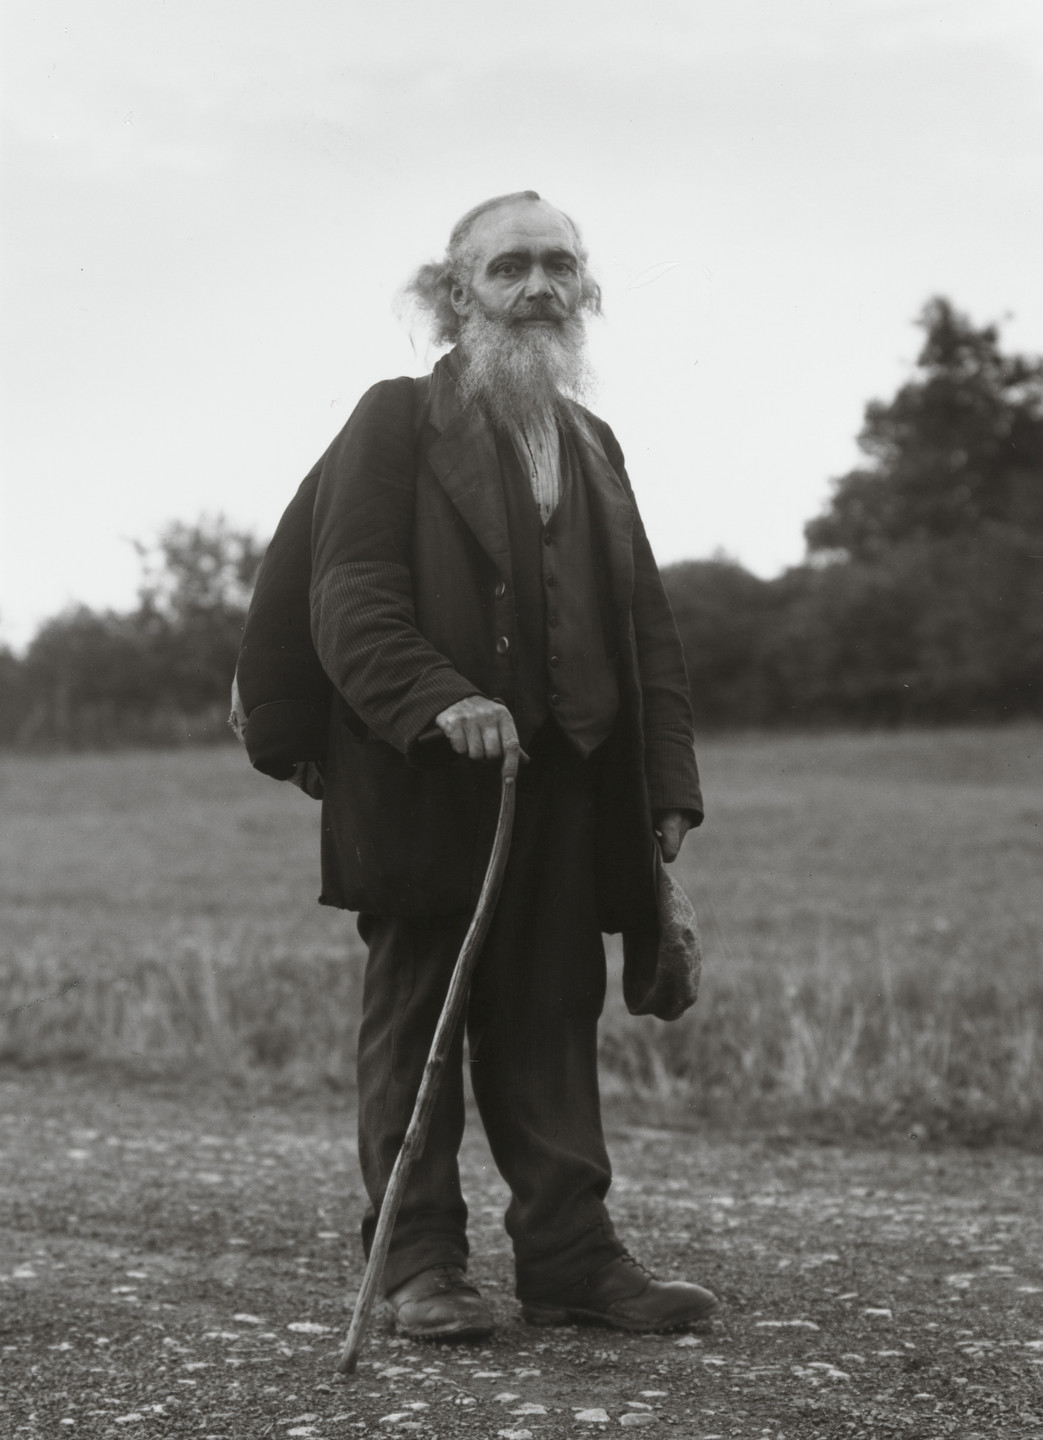 August Sander. Vagrants. 1930